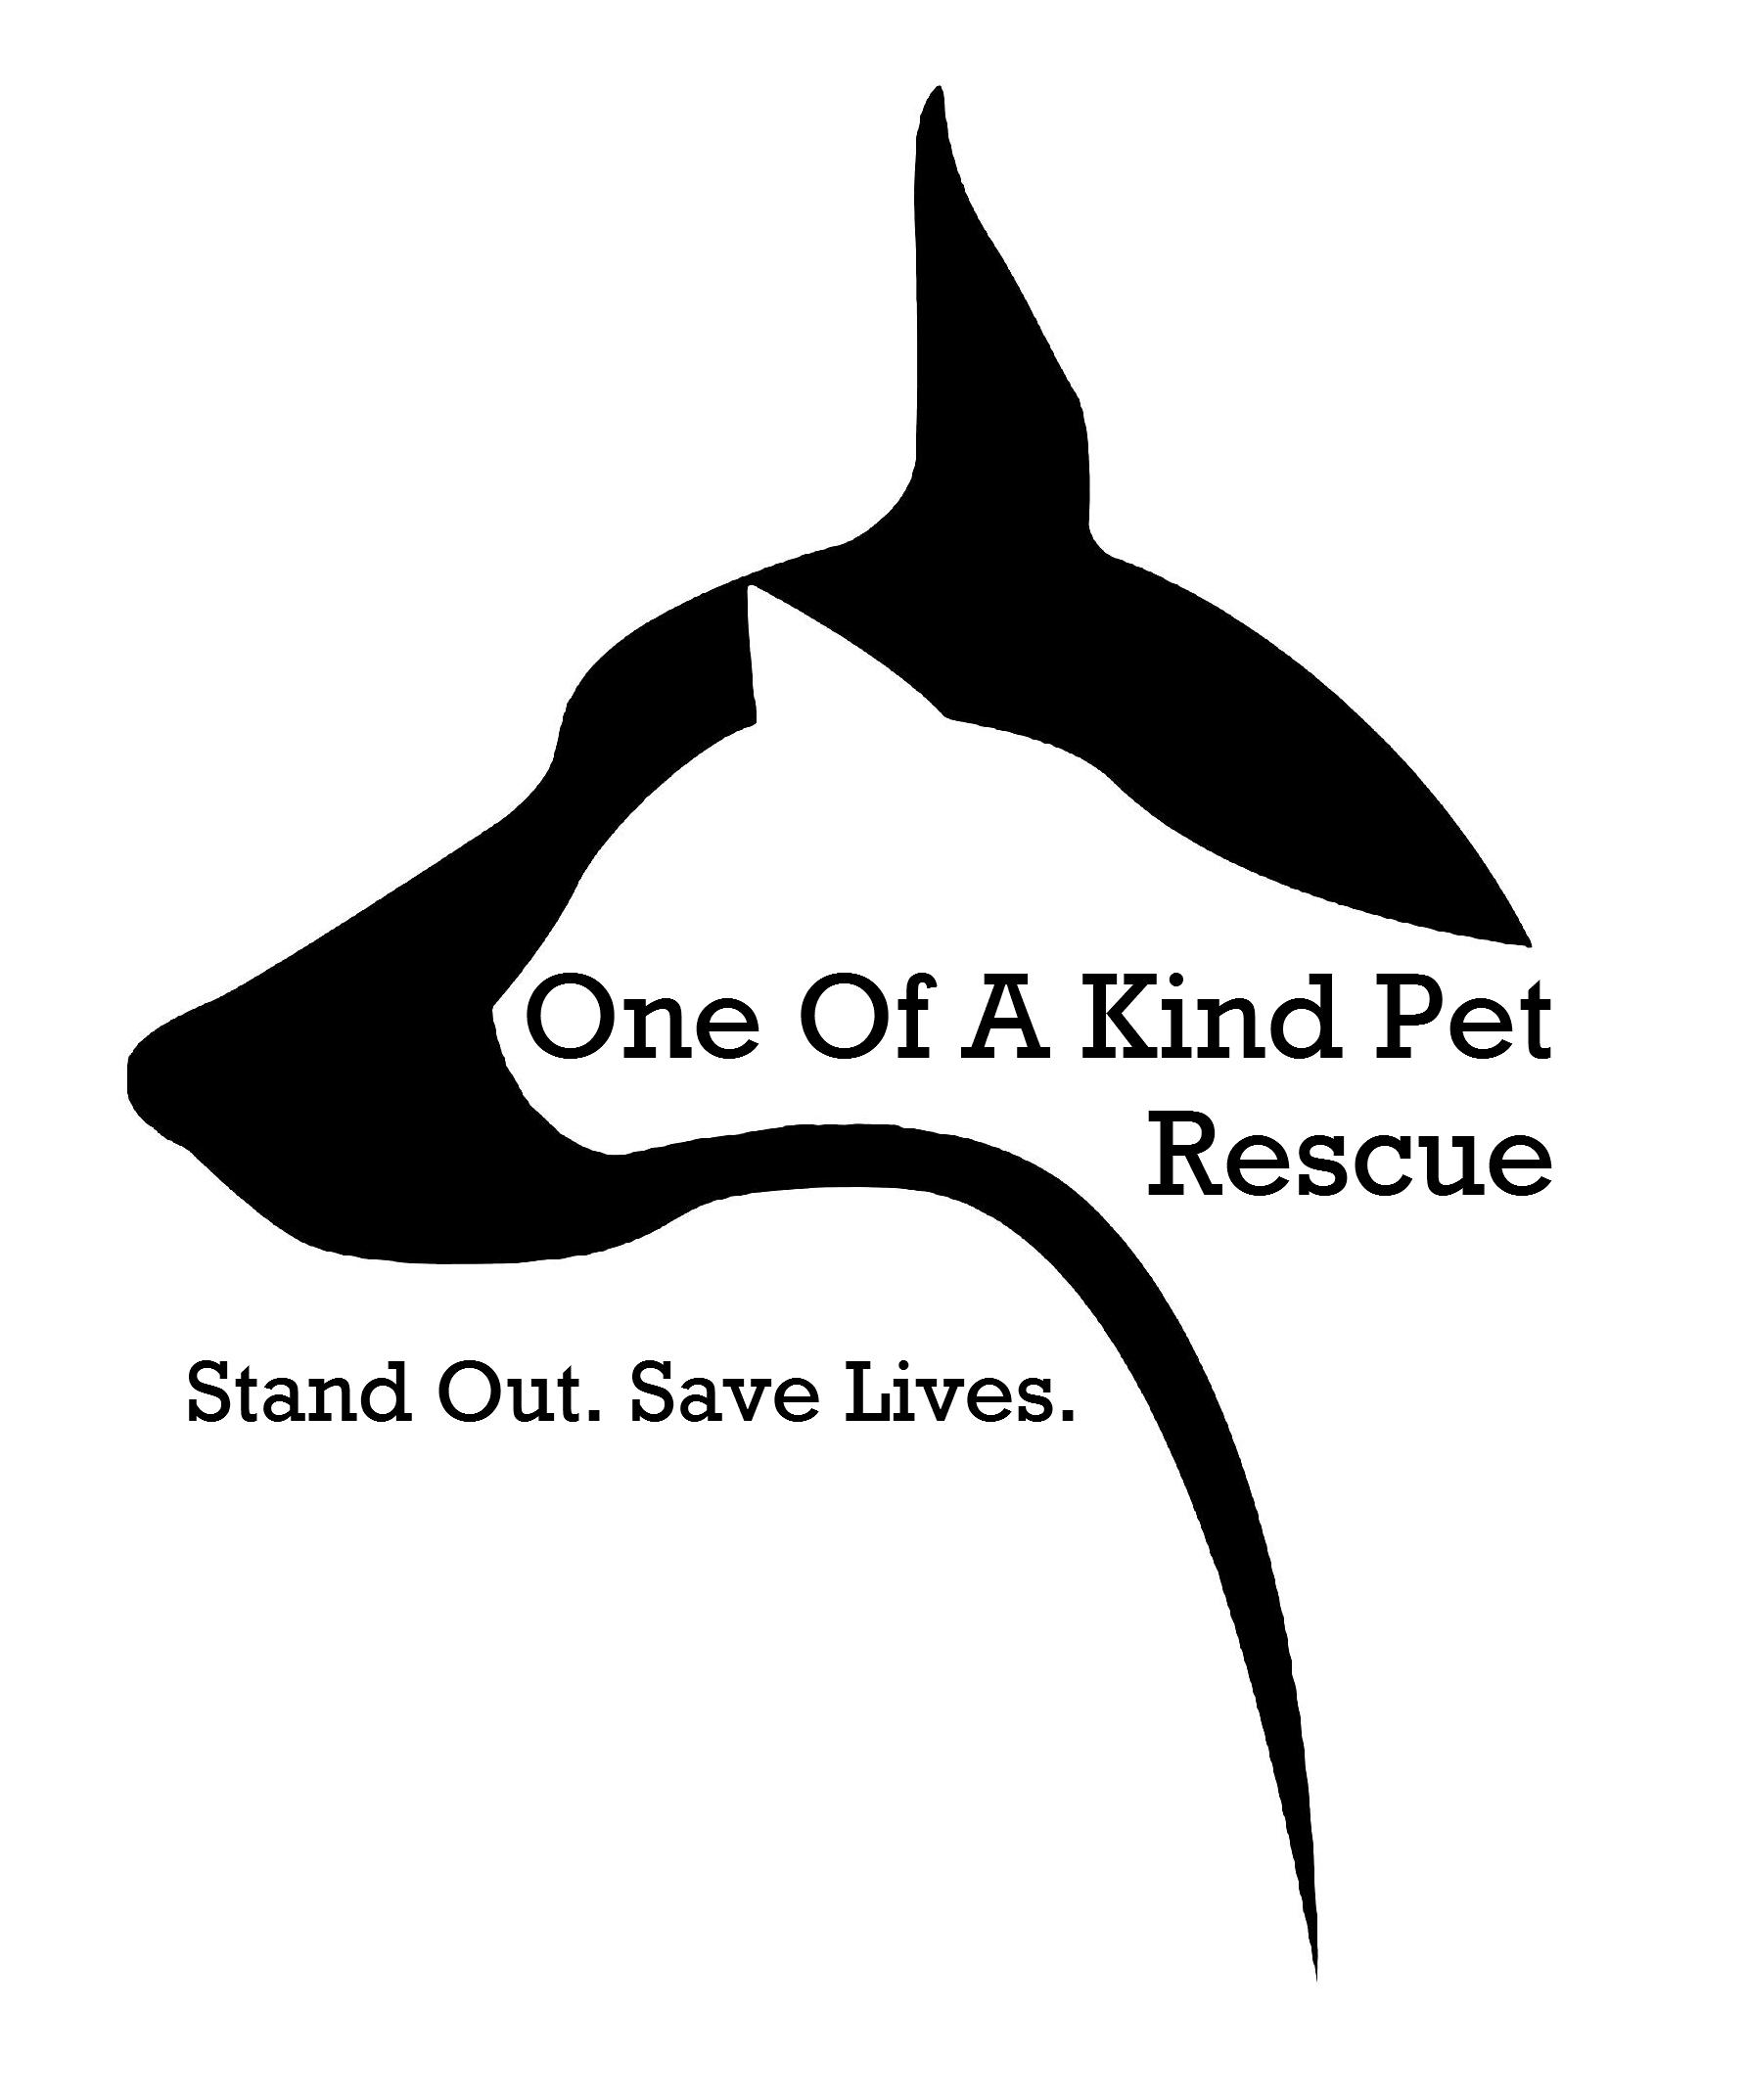 One Of A Kind Pet Rescue